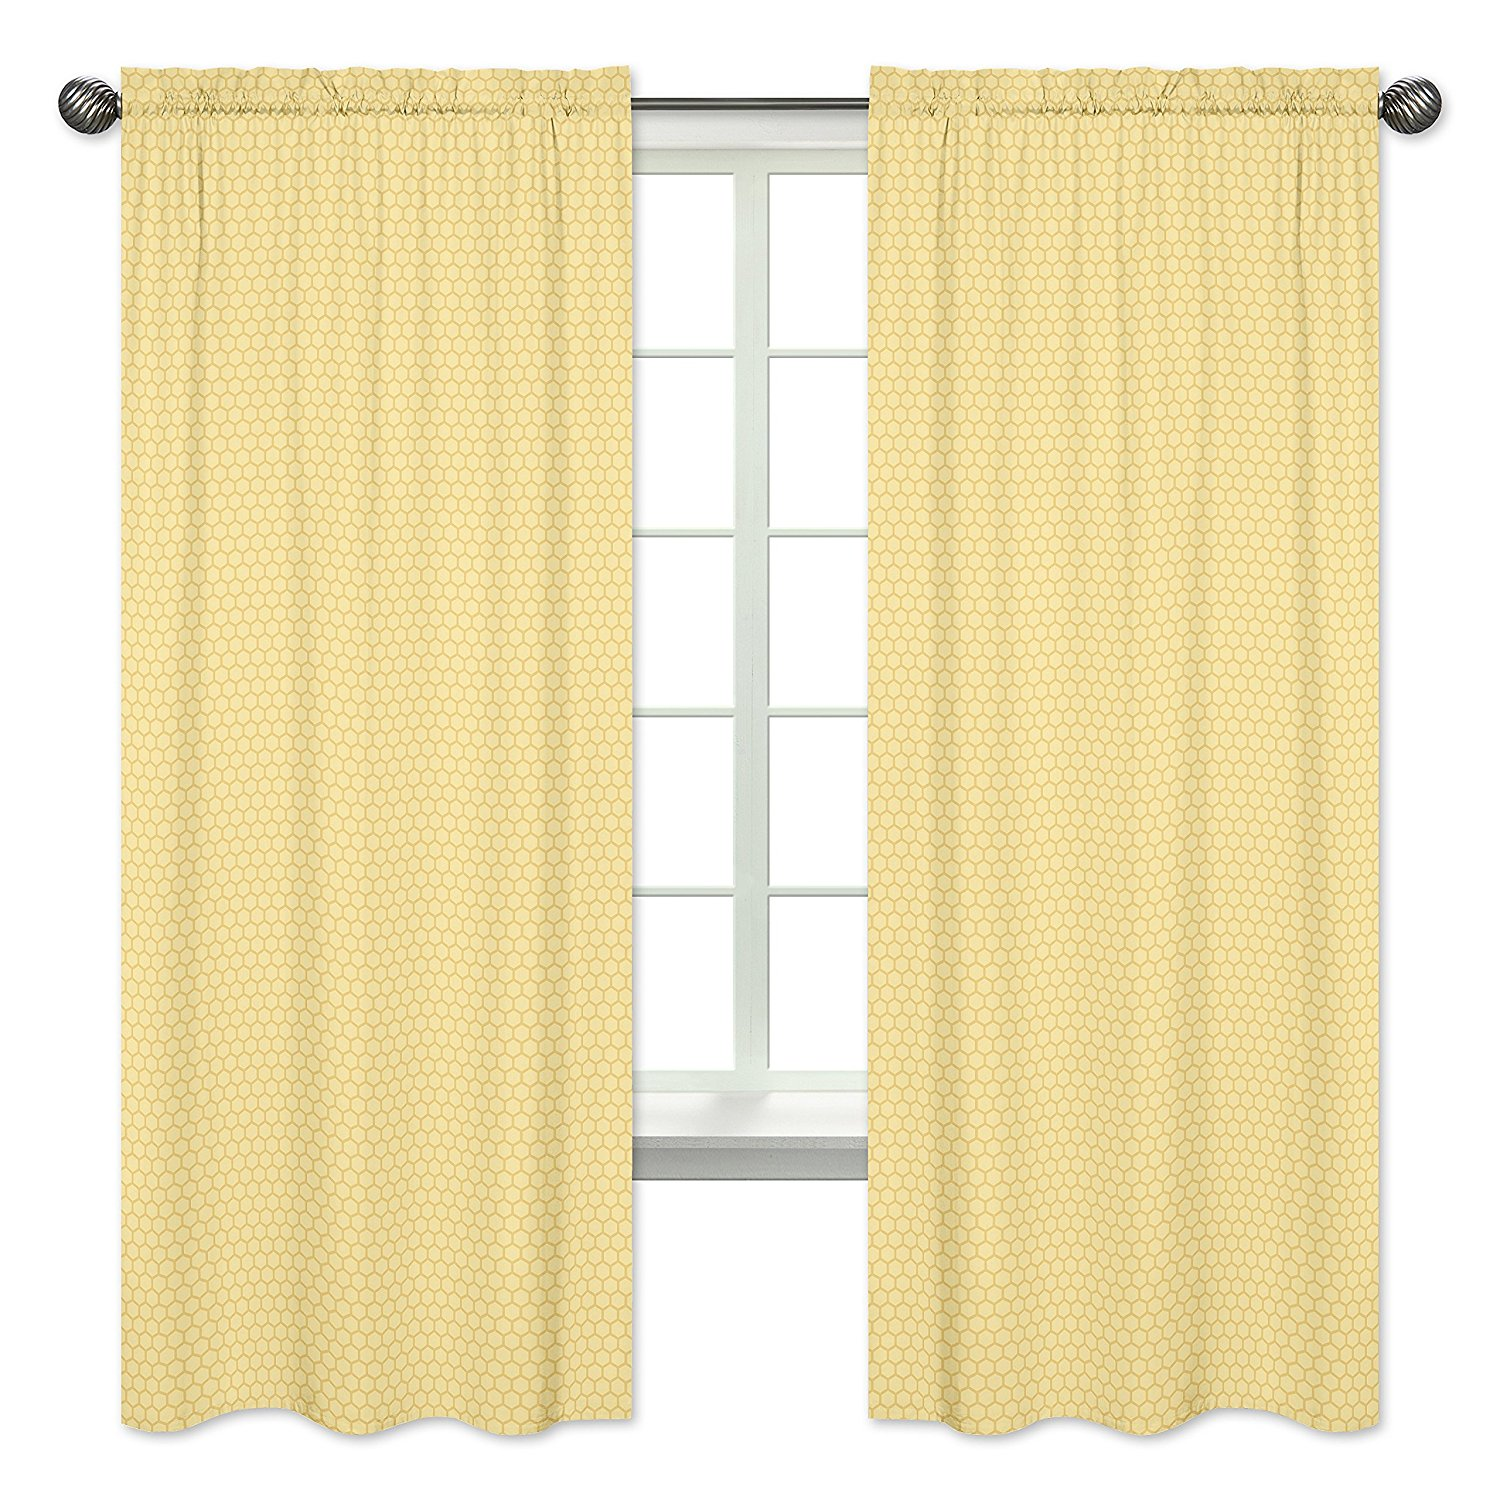 Yellow Honeycomb Window Treatment Panels for Honey Bee Collection Set of 2 by